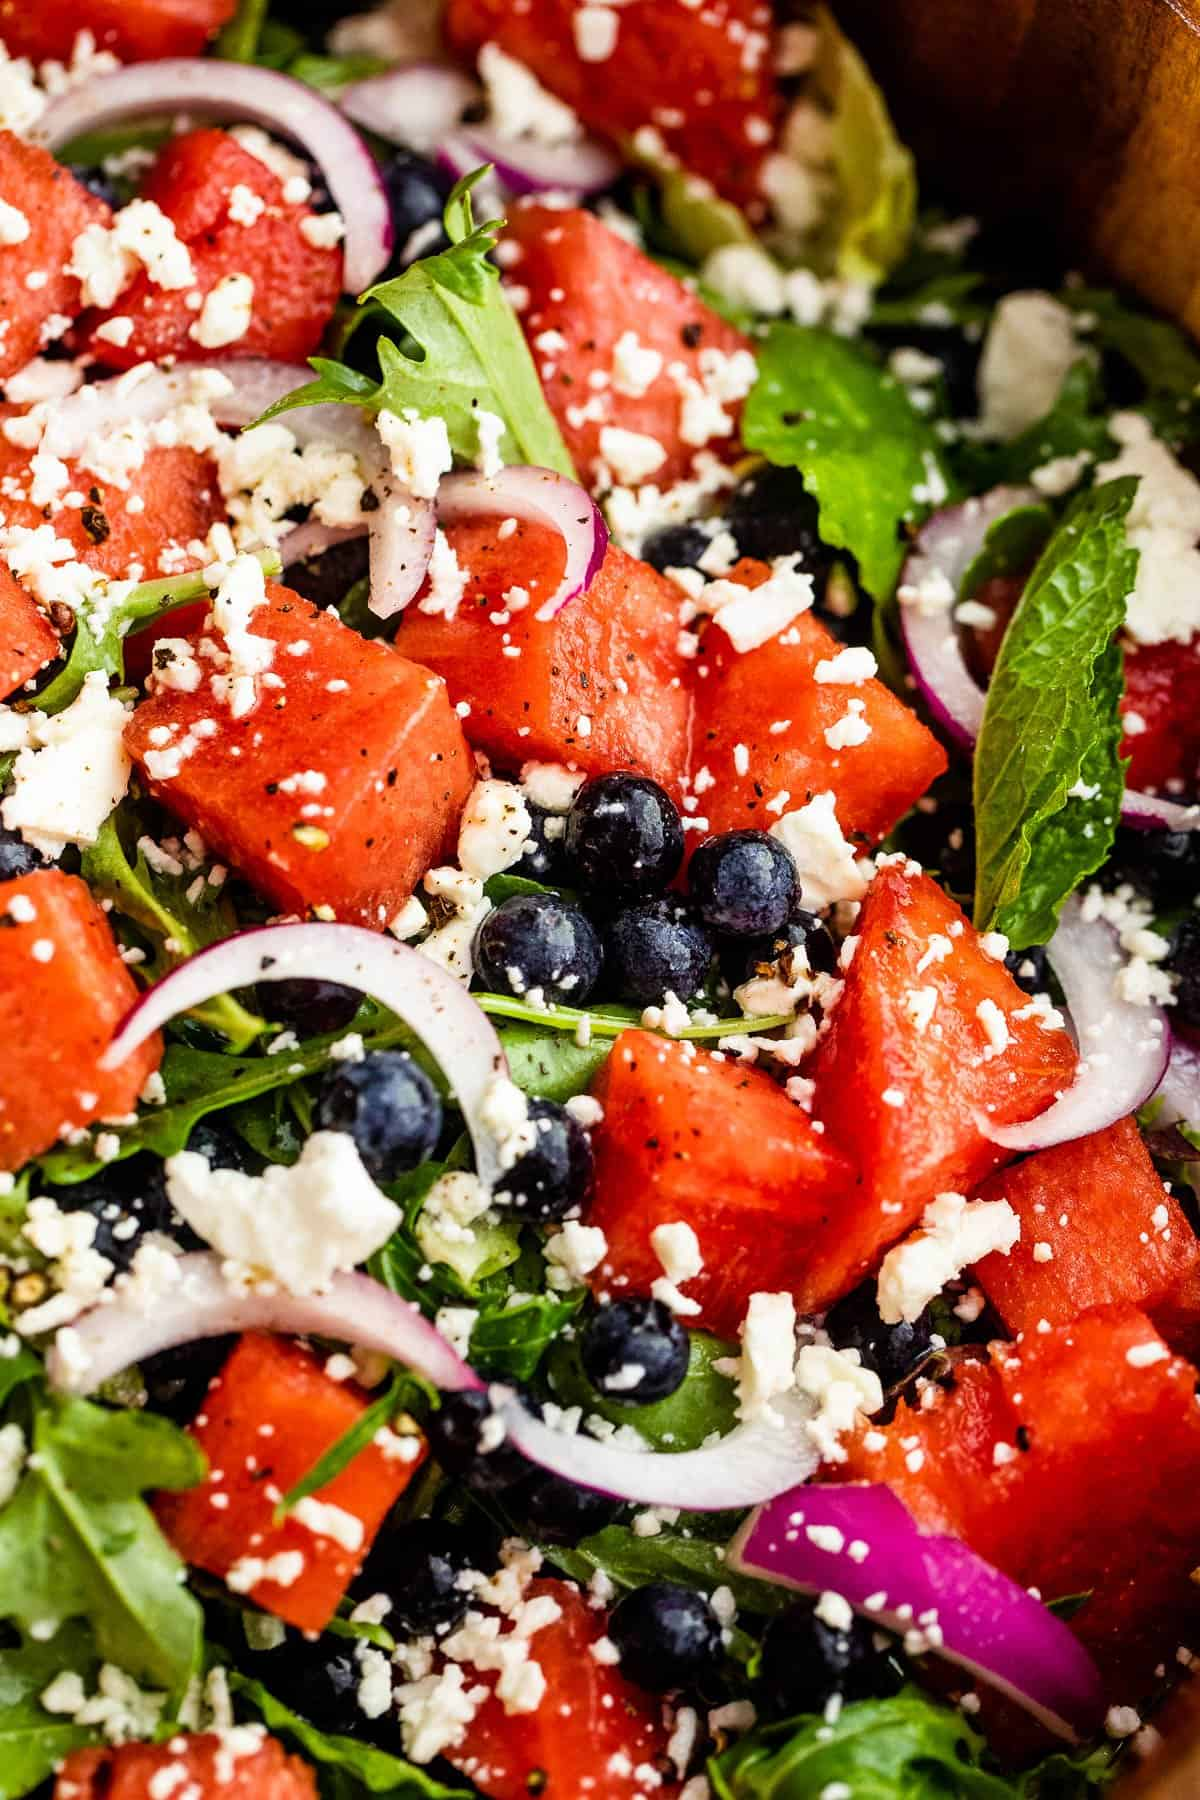 up close photo of cubed watermelon, blueberries, and sliced red onions atop a bed of torn up lettuce greens and topped with feta cheese crumbles